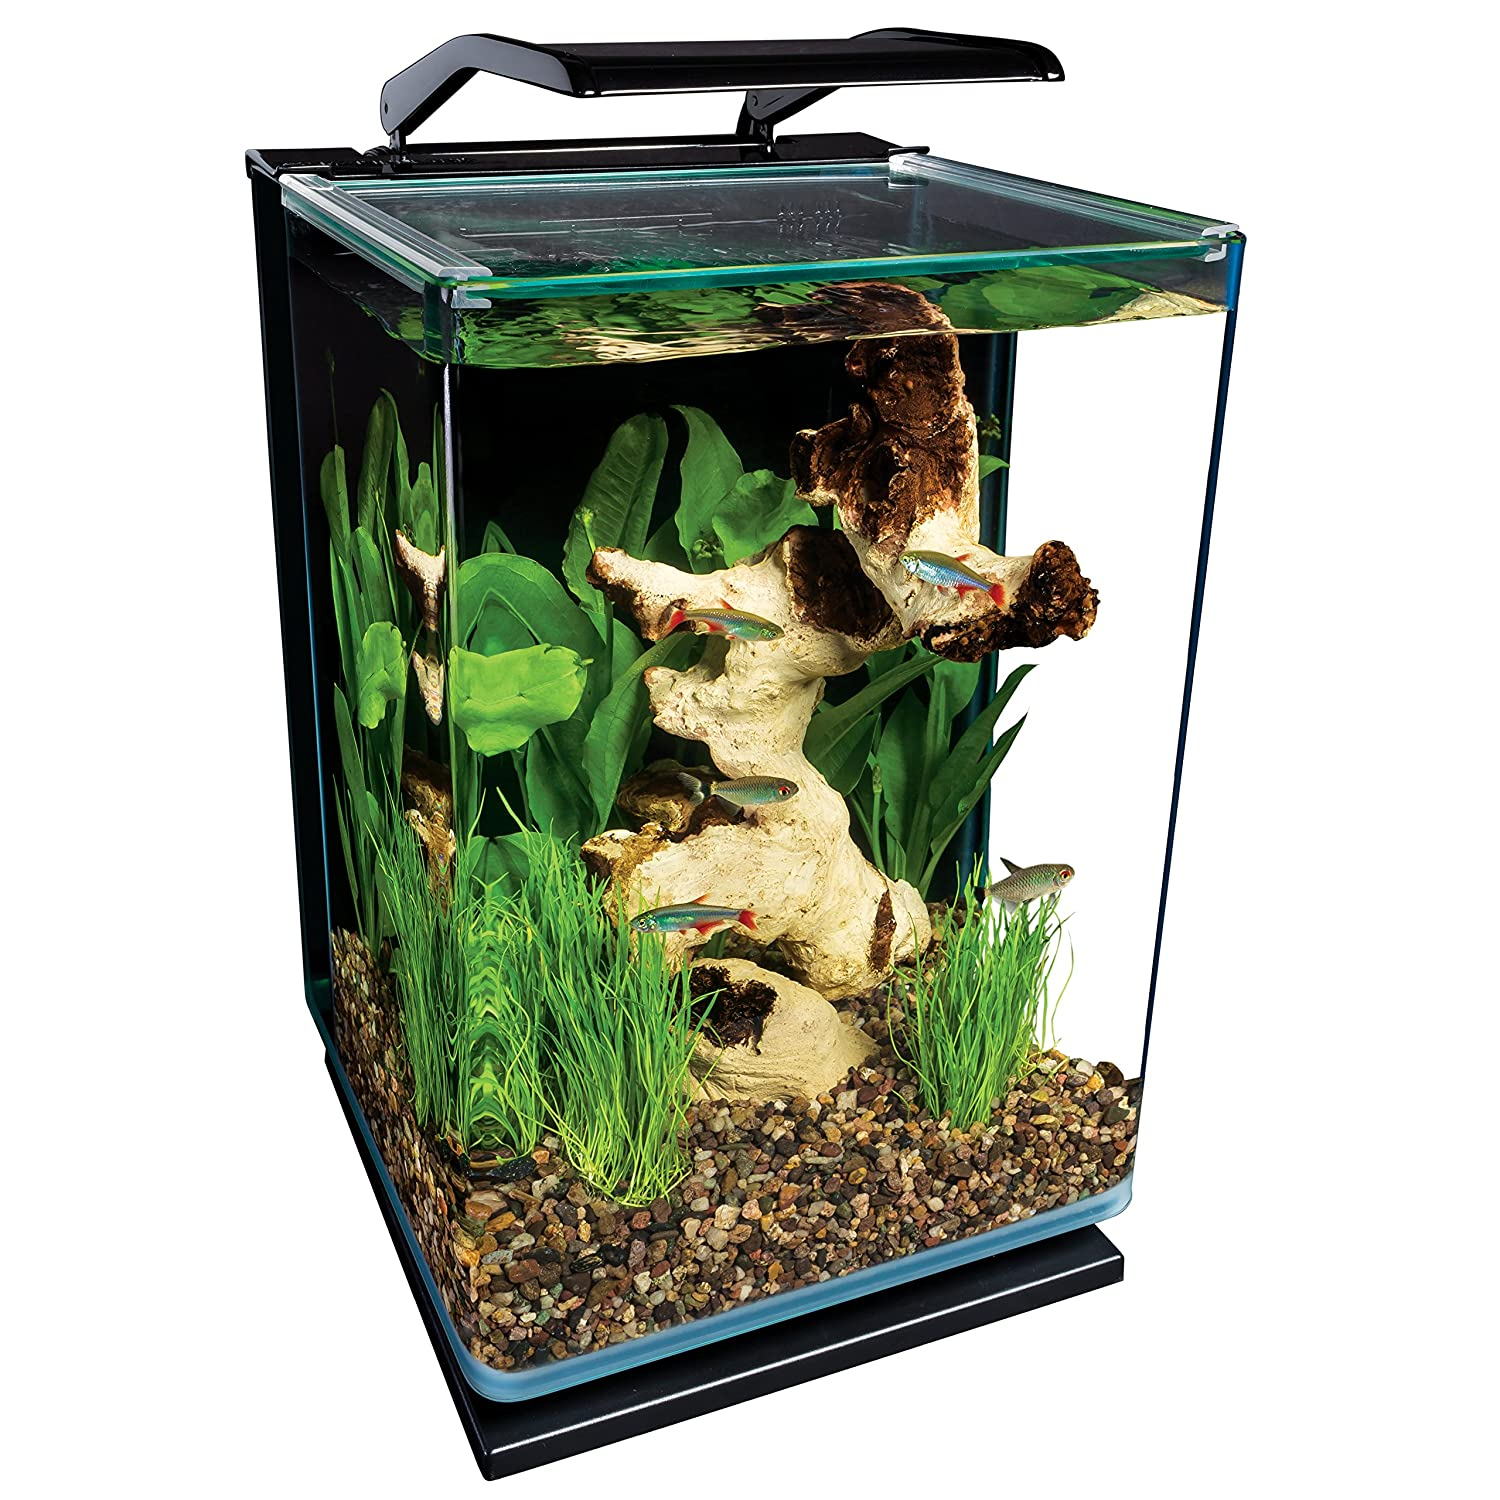 Fish blows starter kits aquarium aquatic water tank led for 5 gallon glass fish tank